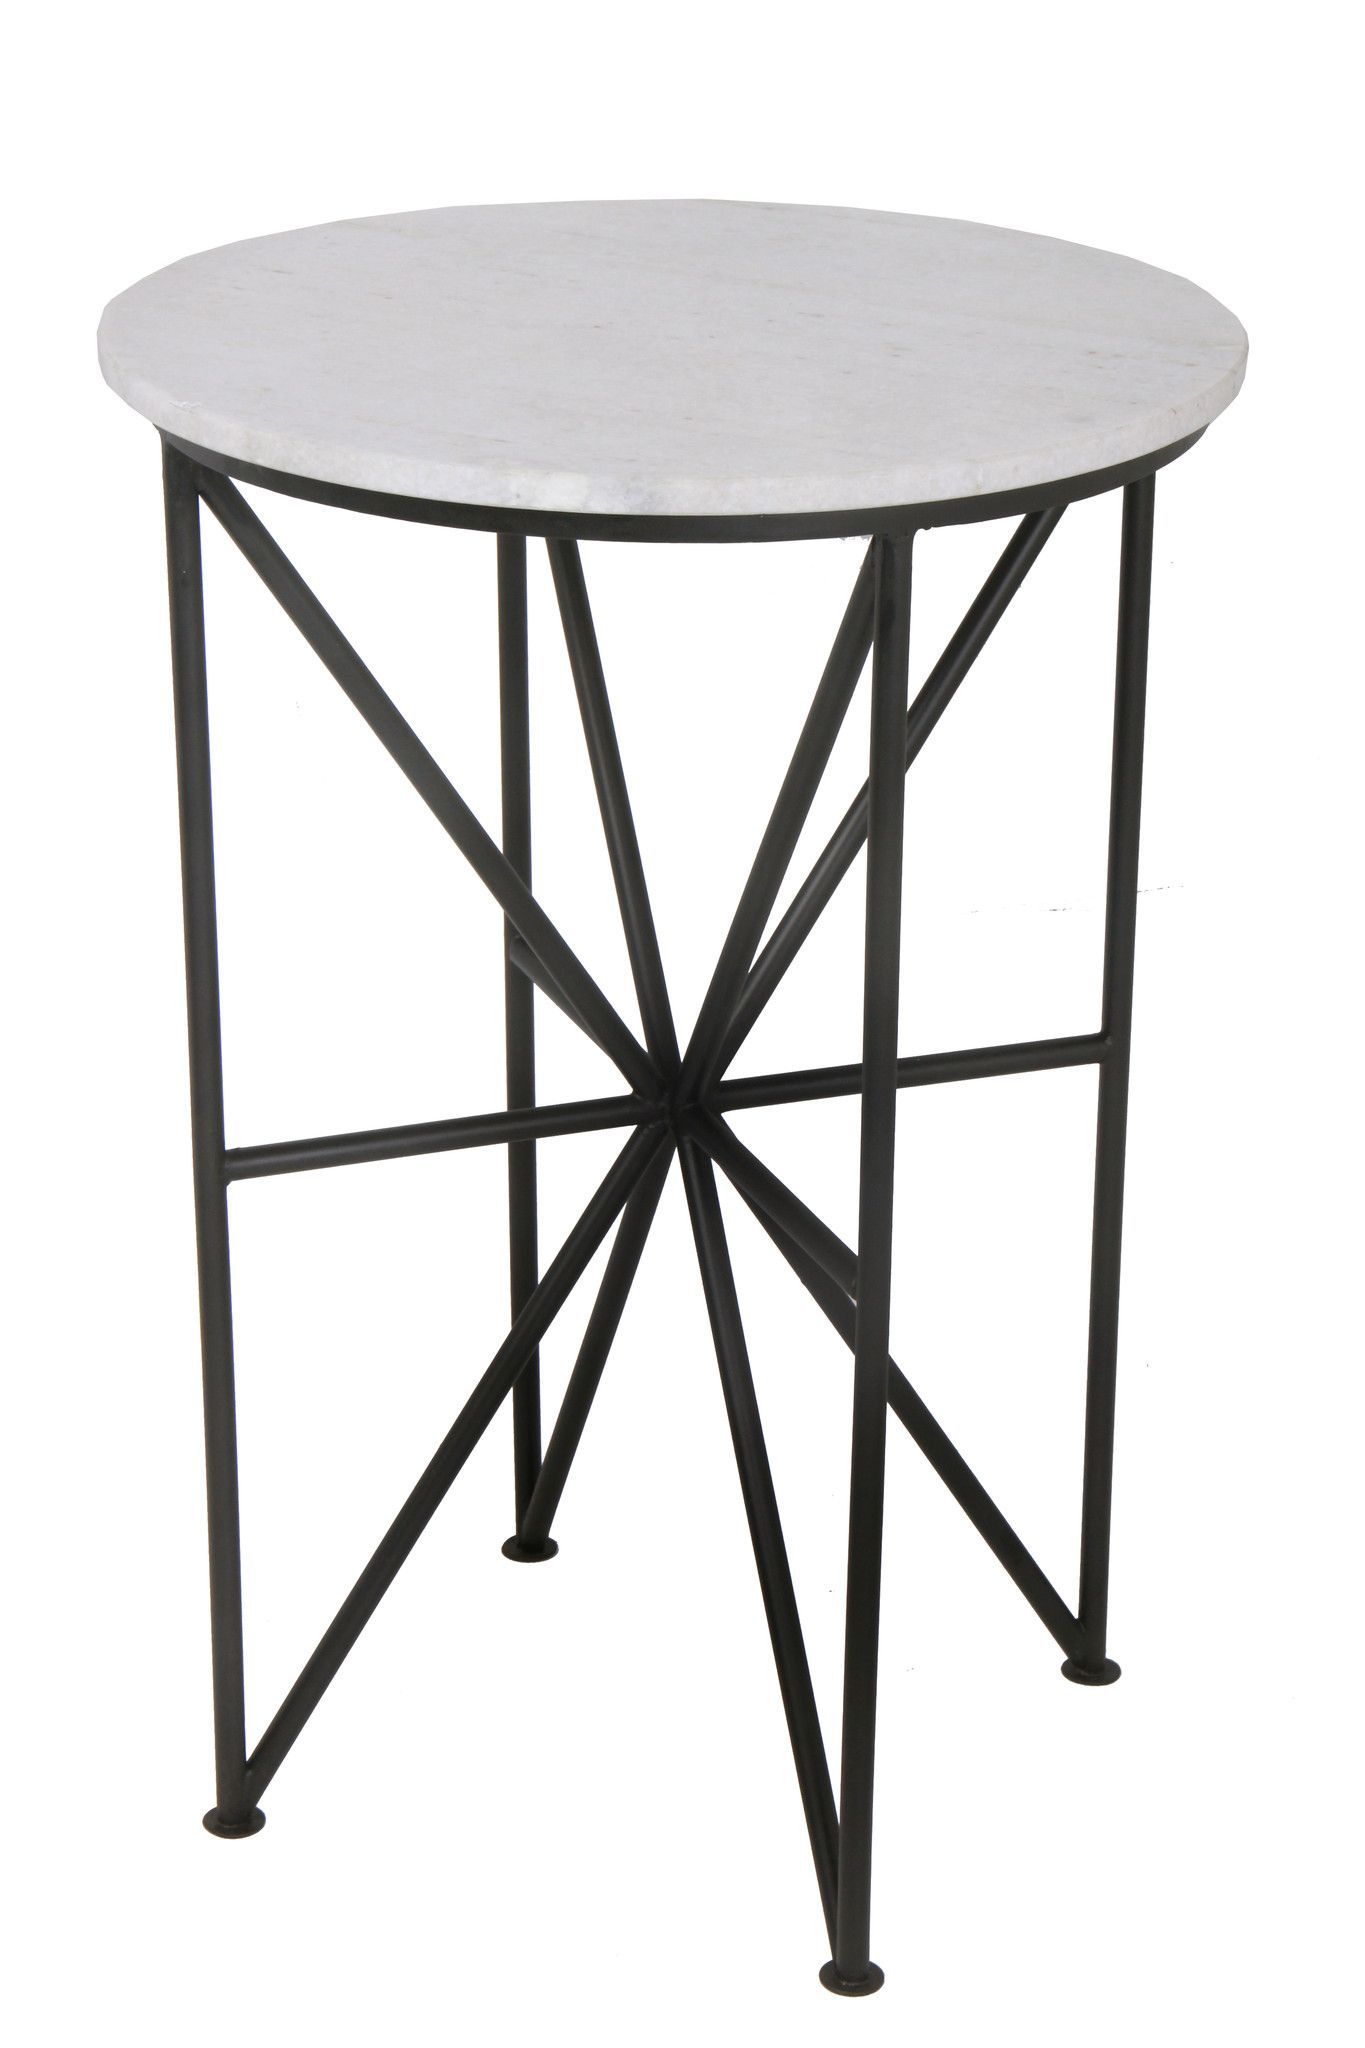 quadrant glass accent table black products tables contemporary daniels furniture root sofa set rustic metal legs with wheels oval entry end lamp attached wicker rattan jeromes